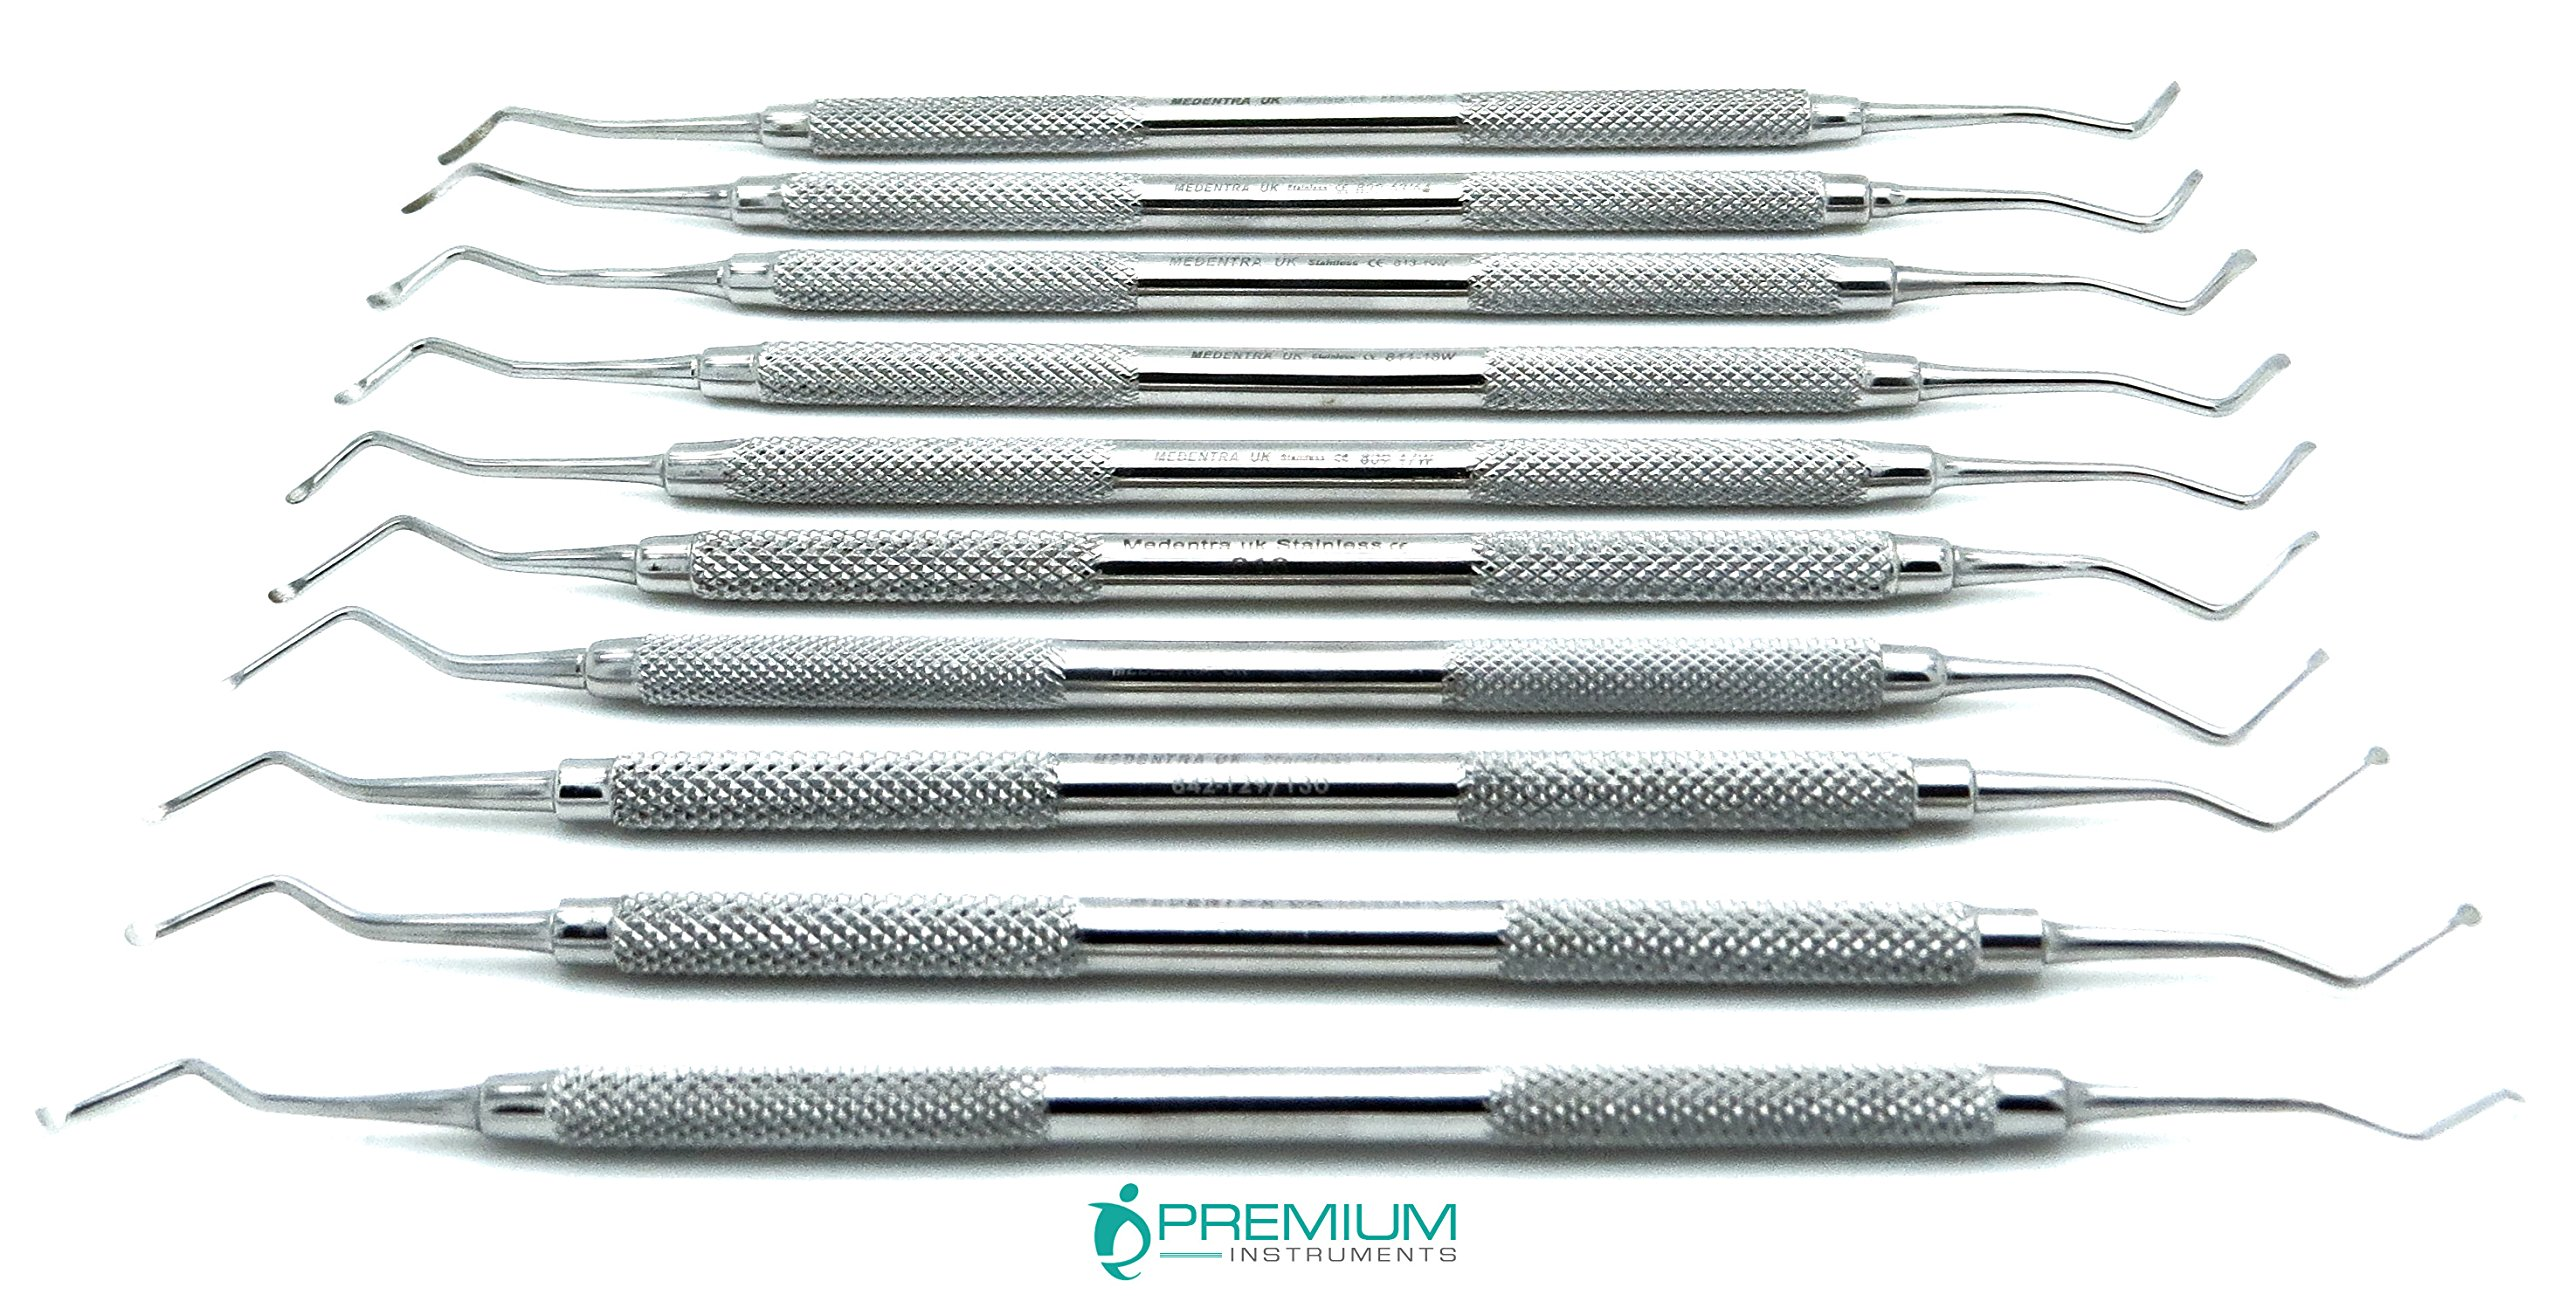 Excavators Double Ended Restorative Endodontic Stainless Steel Dental Instruments Set of 10 by Premium Instruments